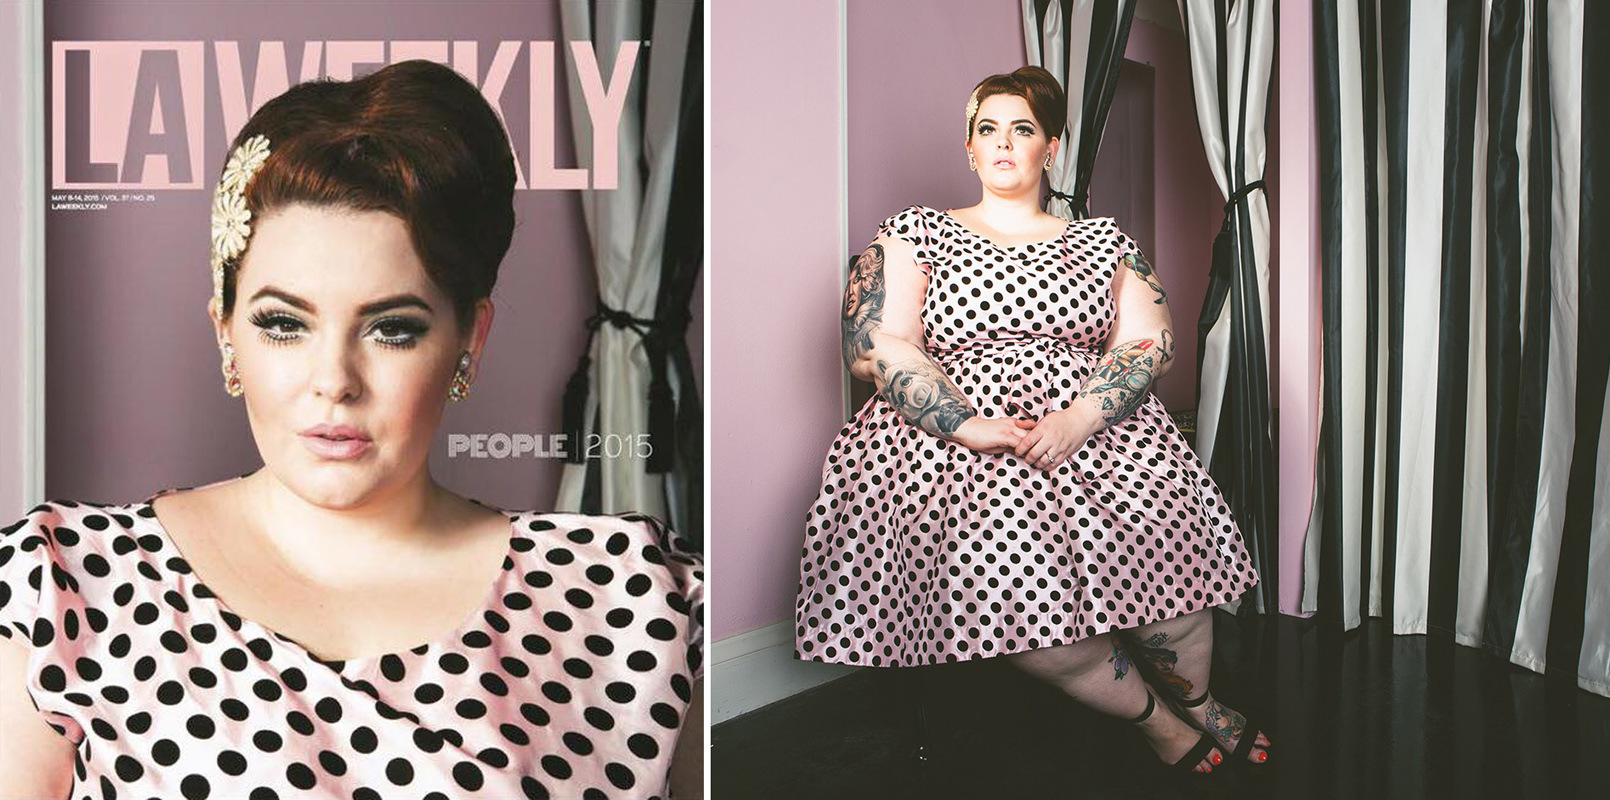 His Vintage Touch - Tess Holliday